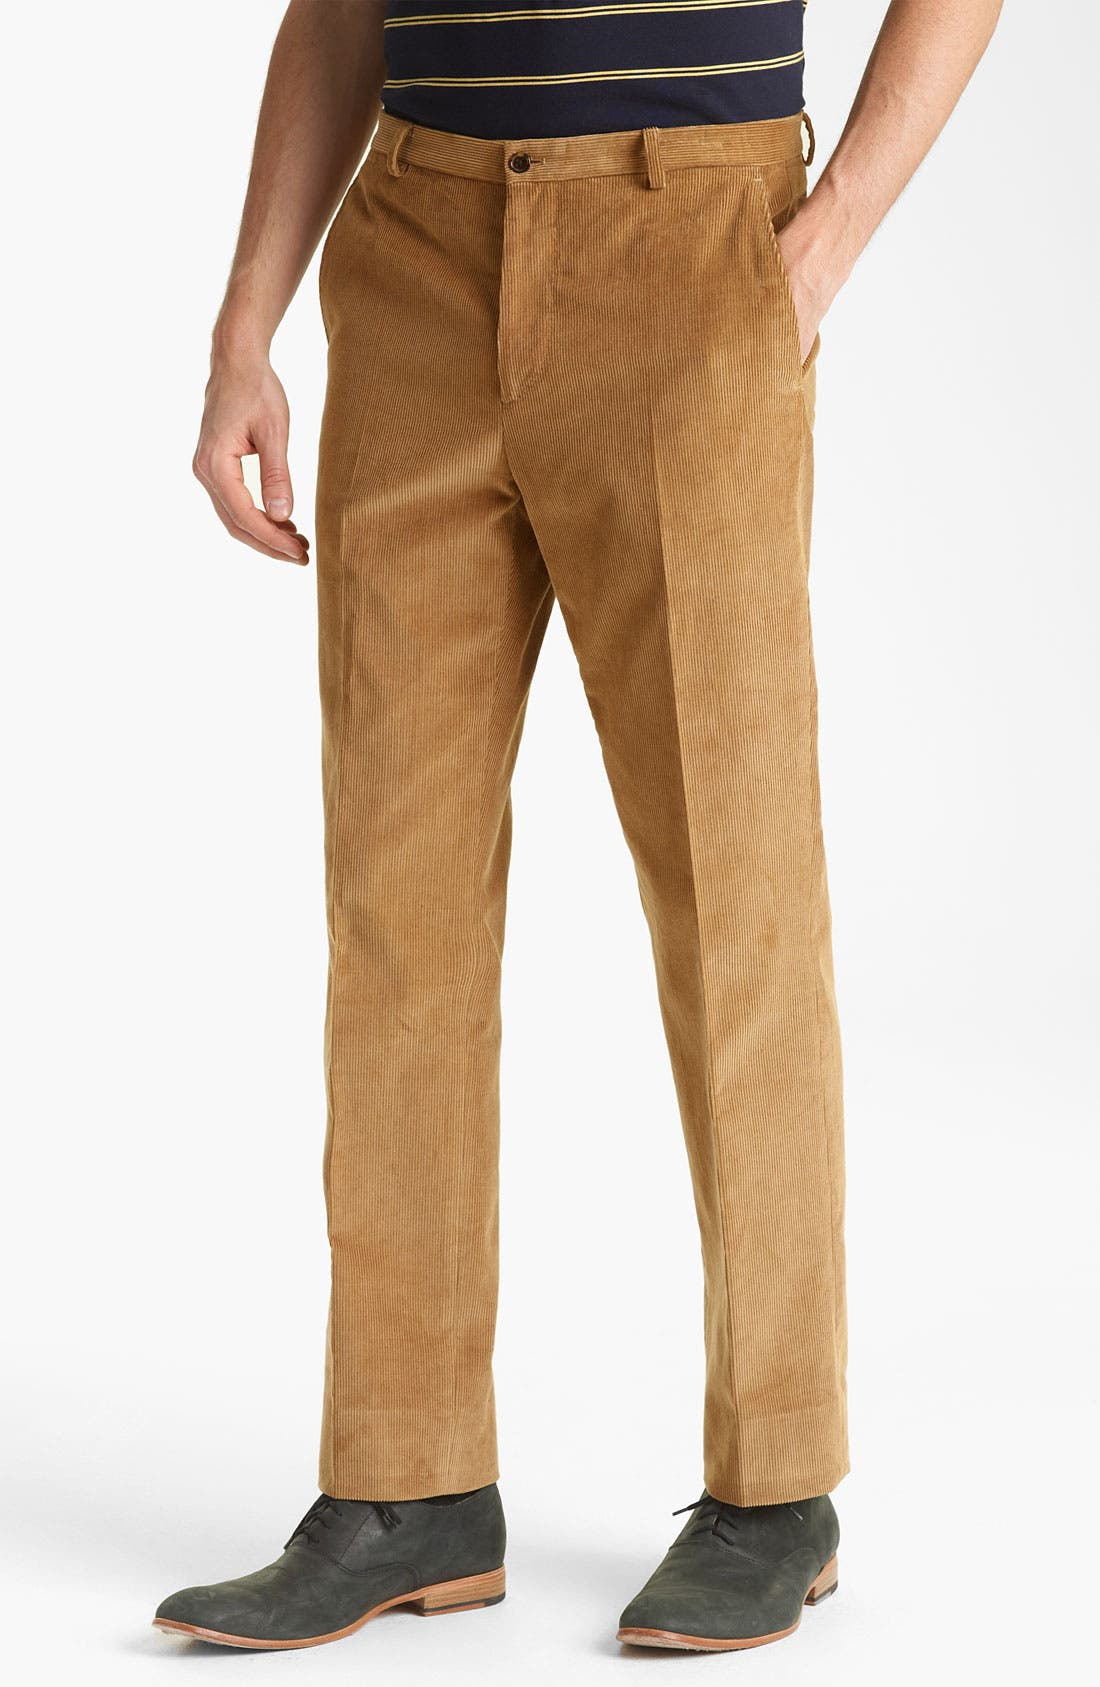 Main Image - Shipley & Halmos 'Grand' Corduroy Suit Trousers